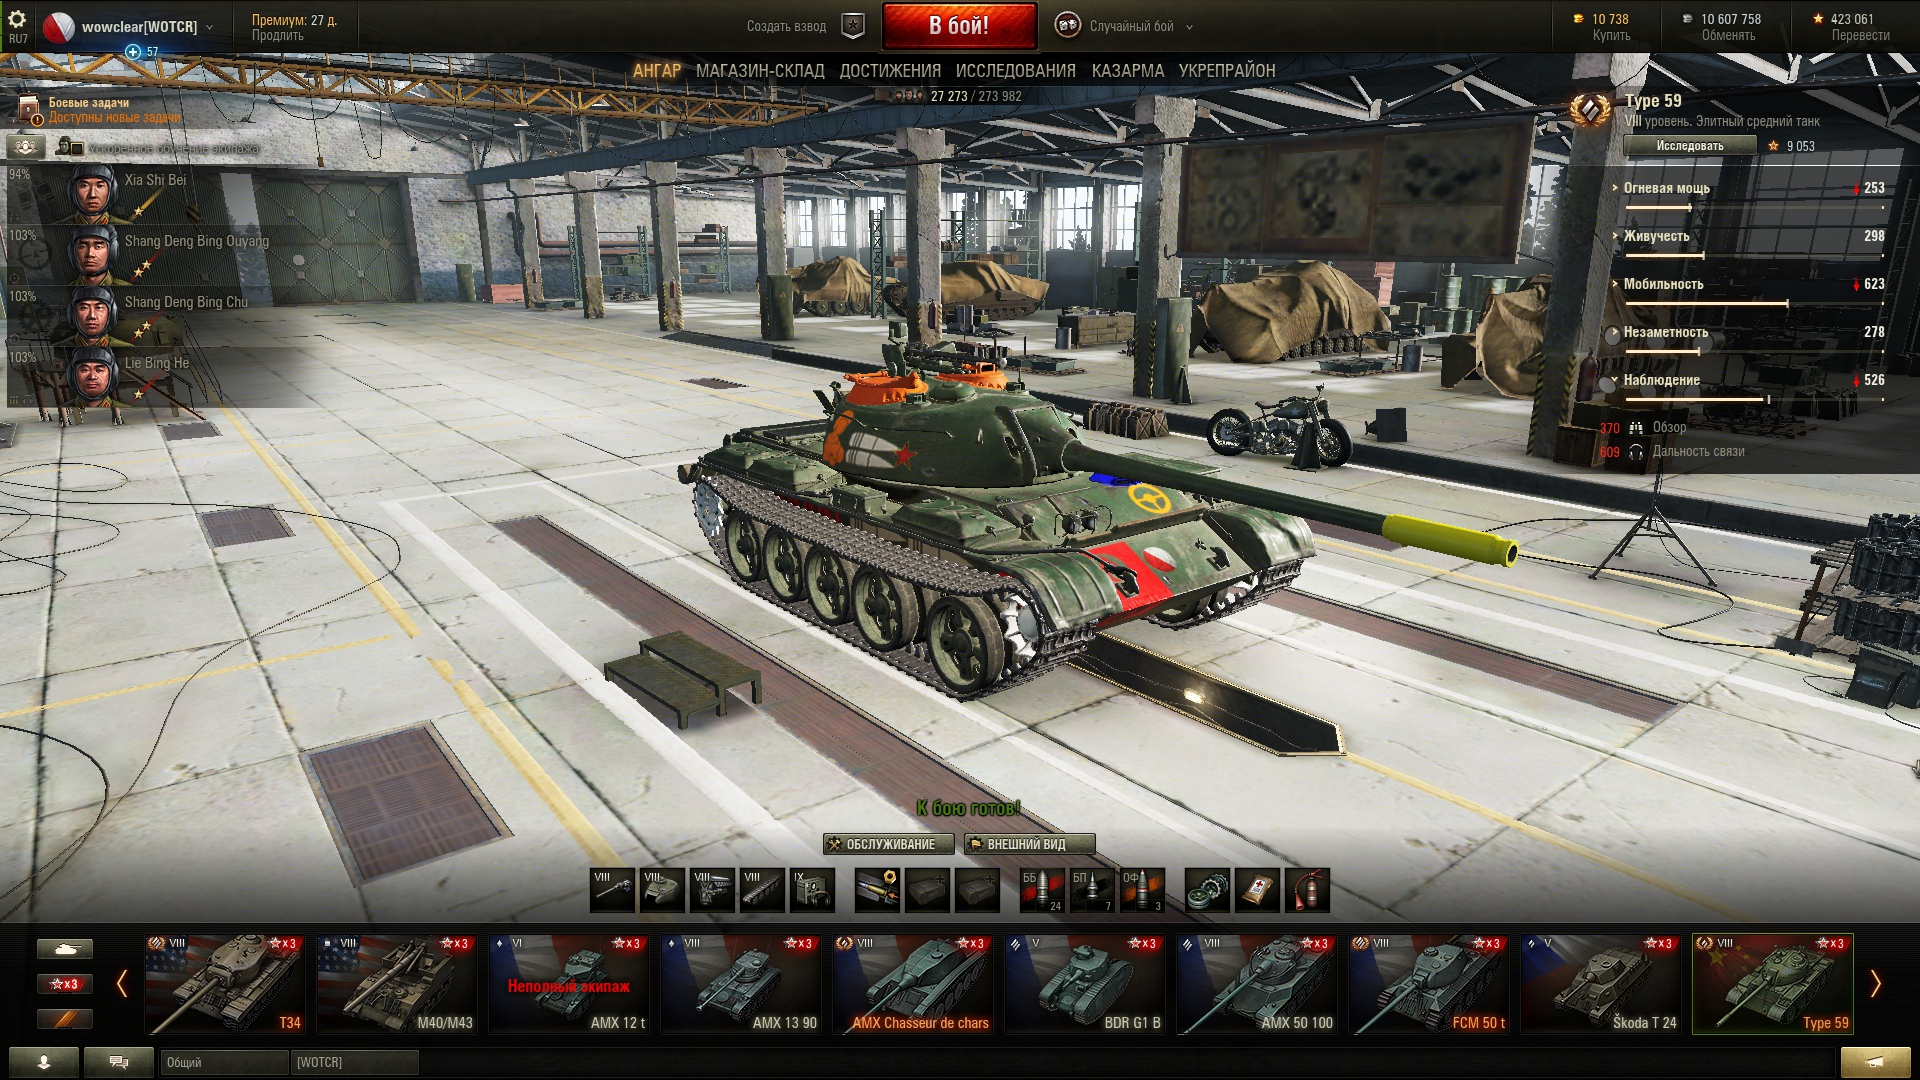 Guide to Weak Spots in World of Tanks | Taugrim's MMO Blog